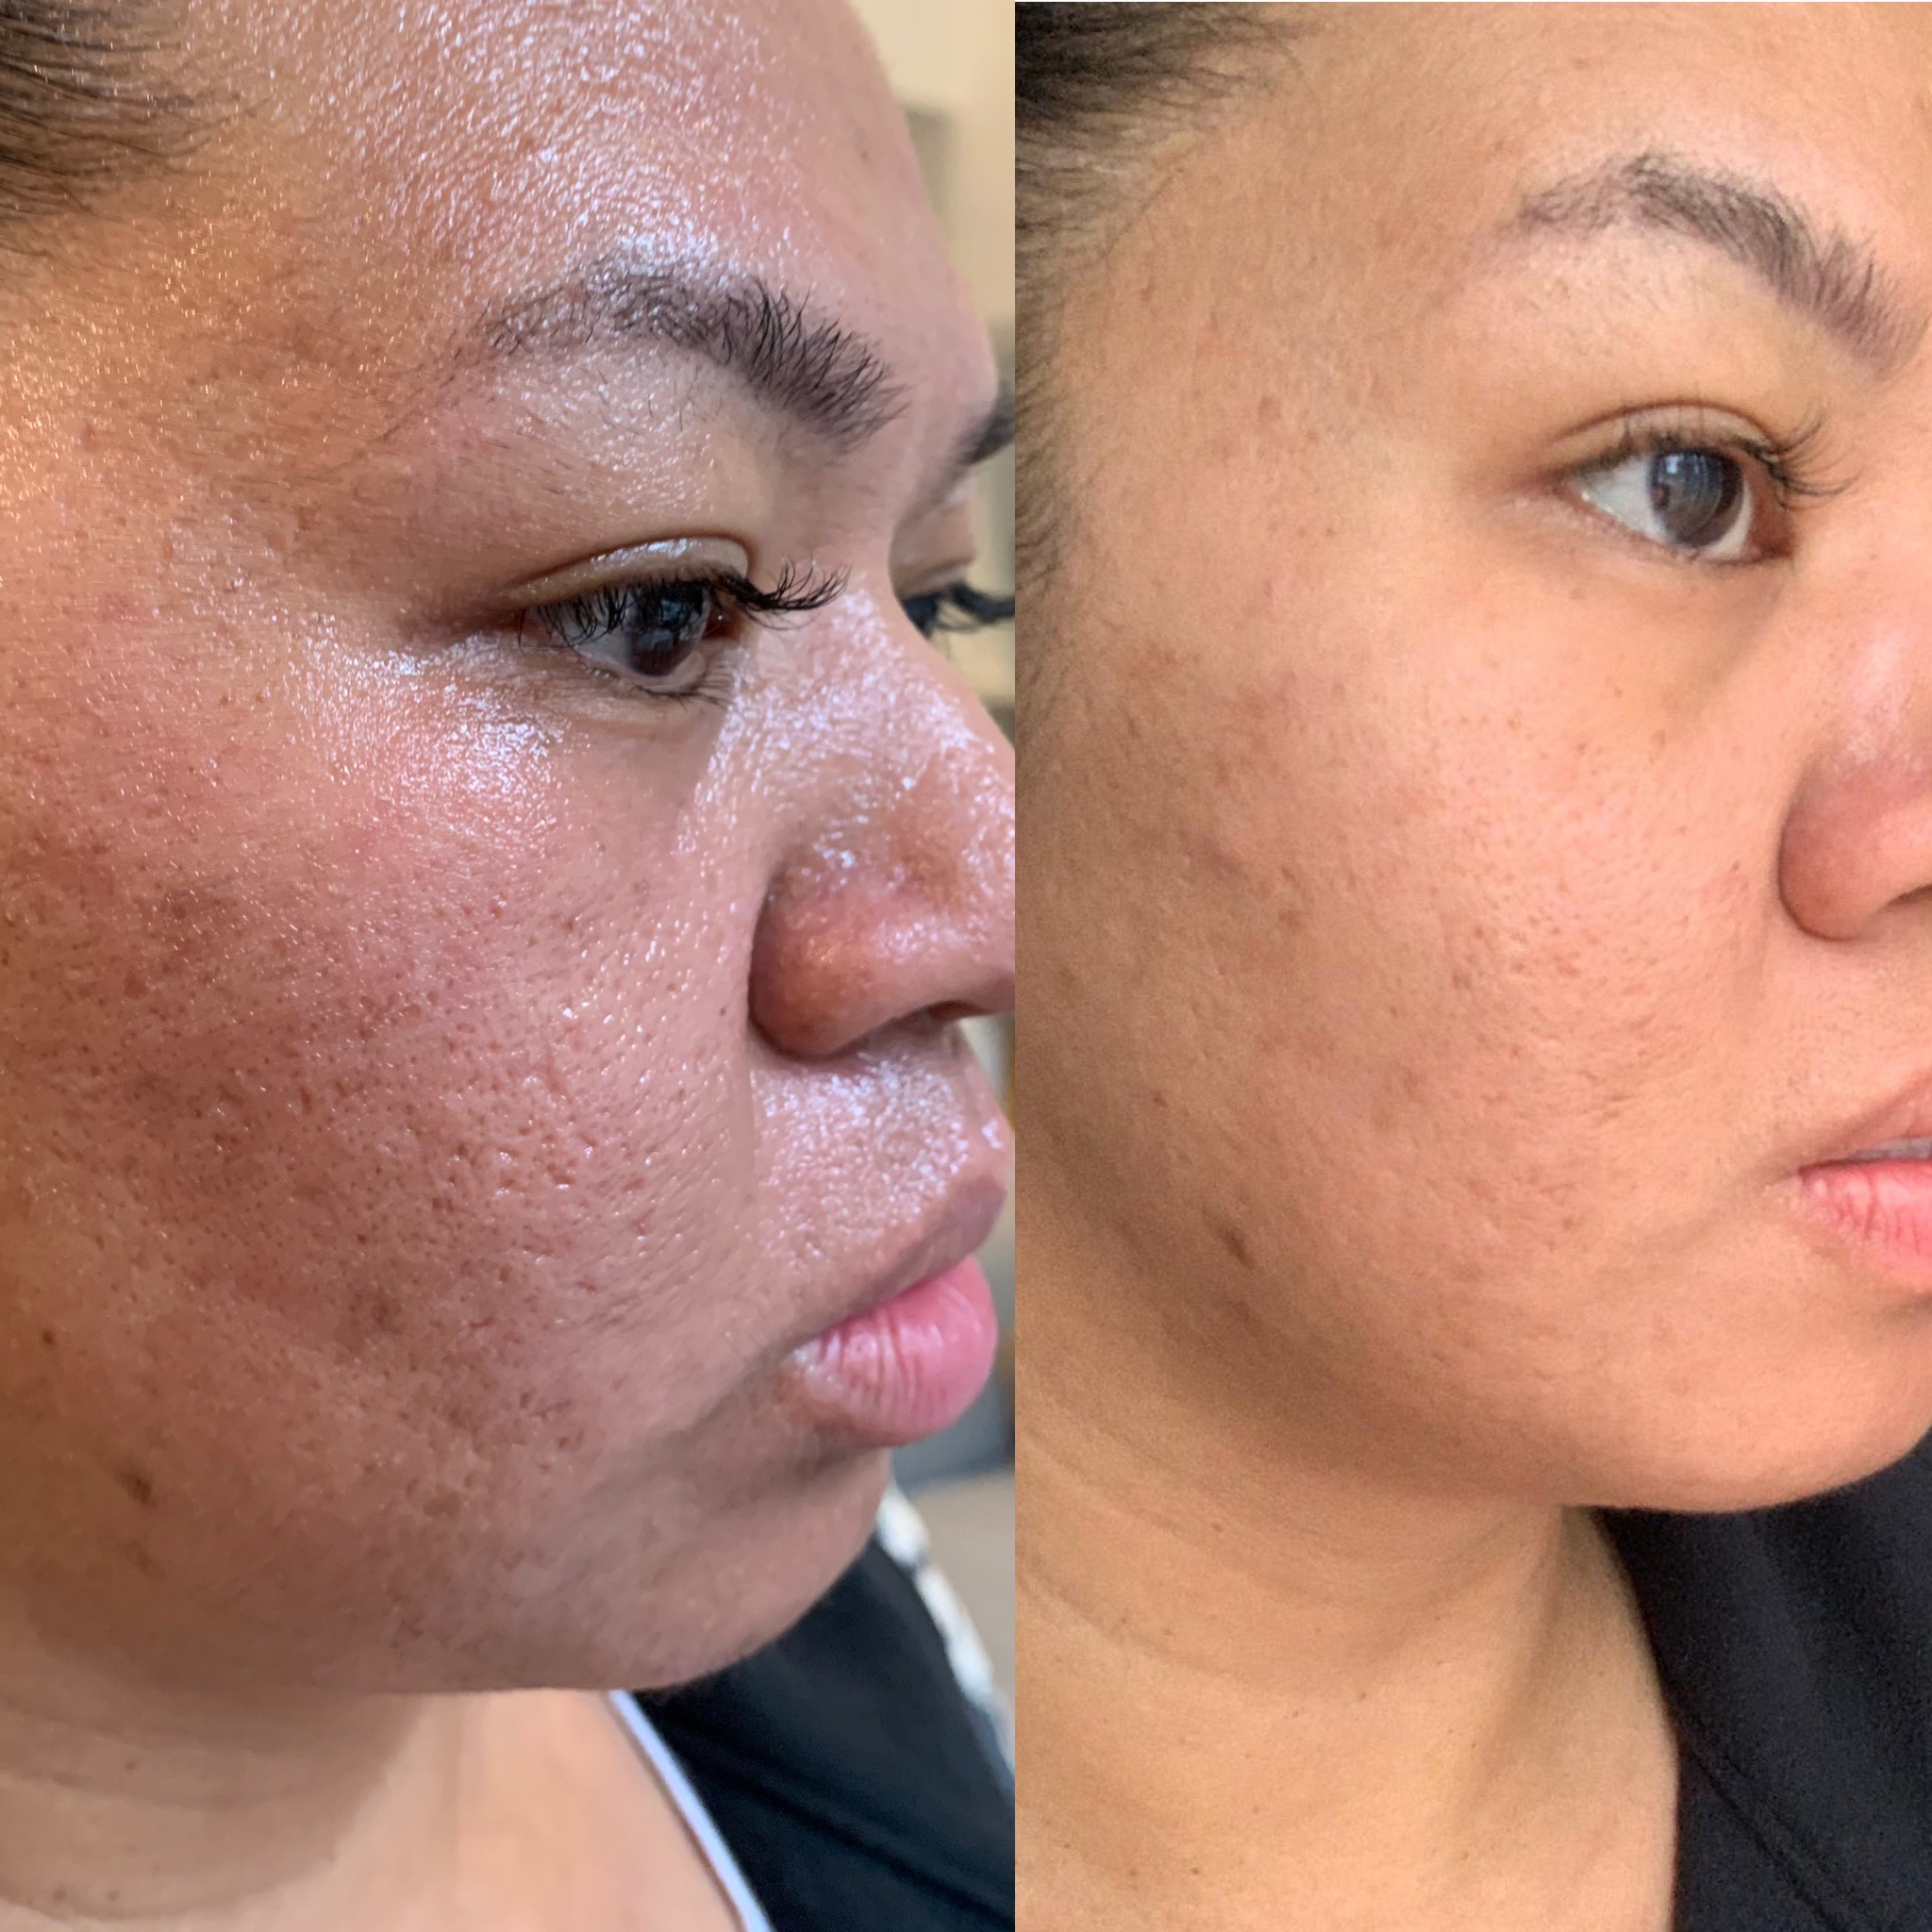 PRP Treatment helps to reduce scarring due to acne, and improve skin texture.